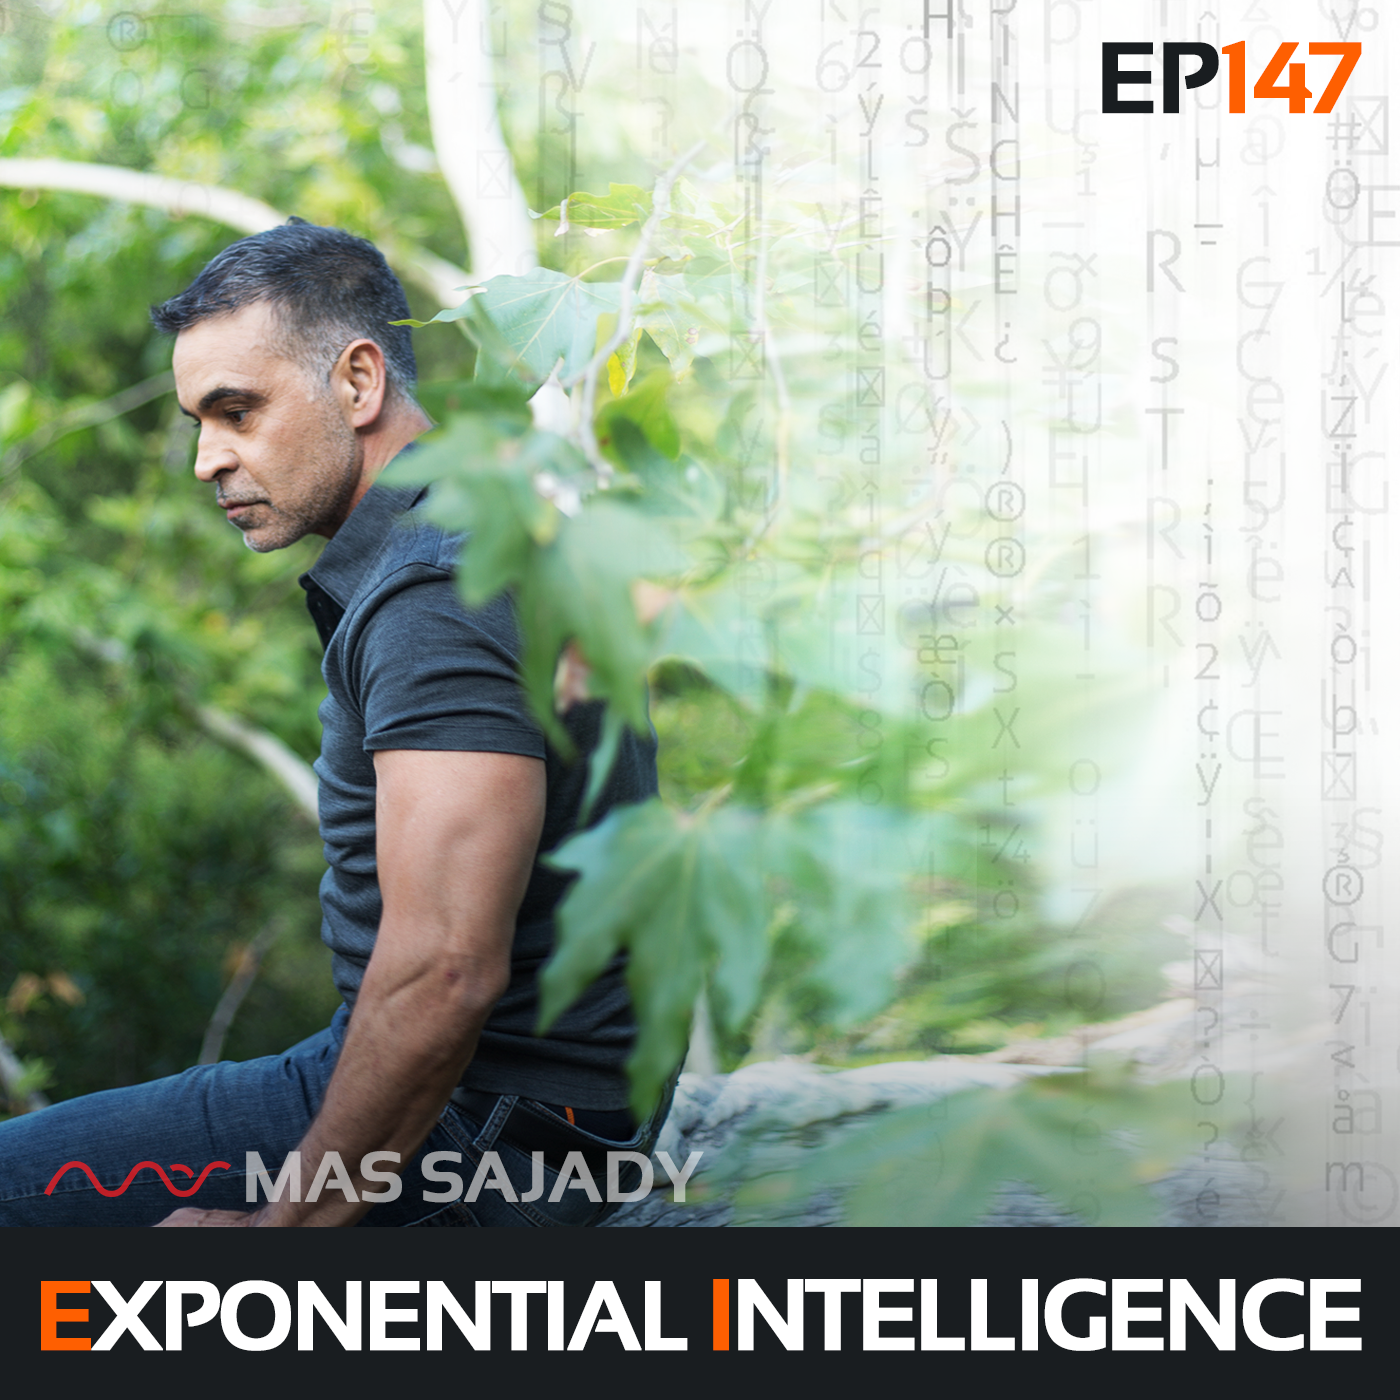 mas-sajady-exponential-intelligence-podcast-147-ascendance-introspection.png